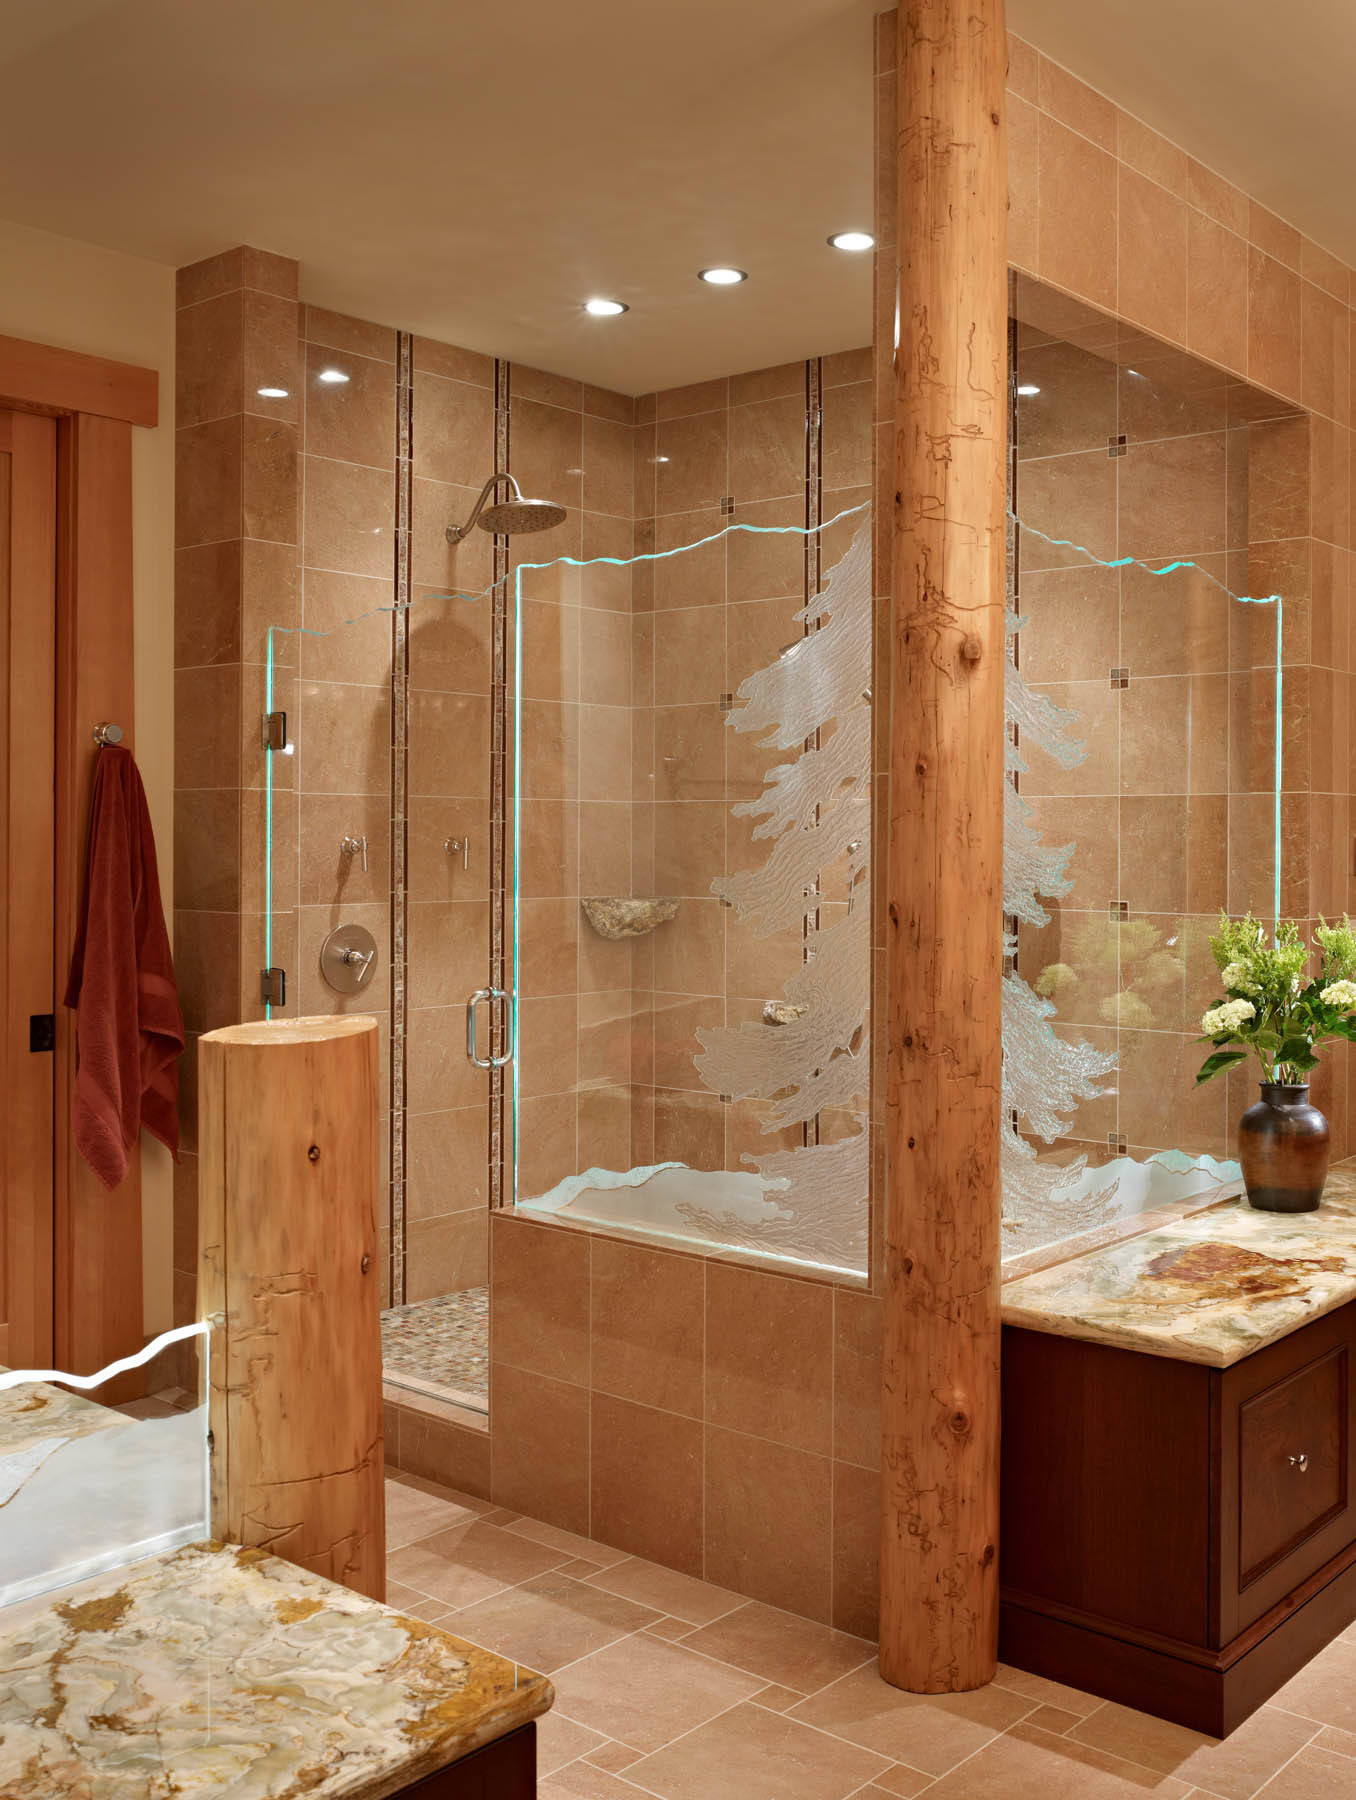 75 Beautiful Rustic Ceramic Tile Bathroom Pictures Ideas